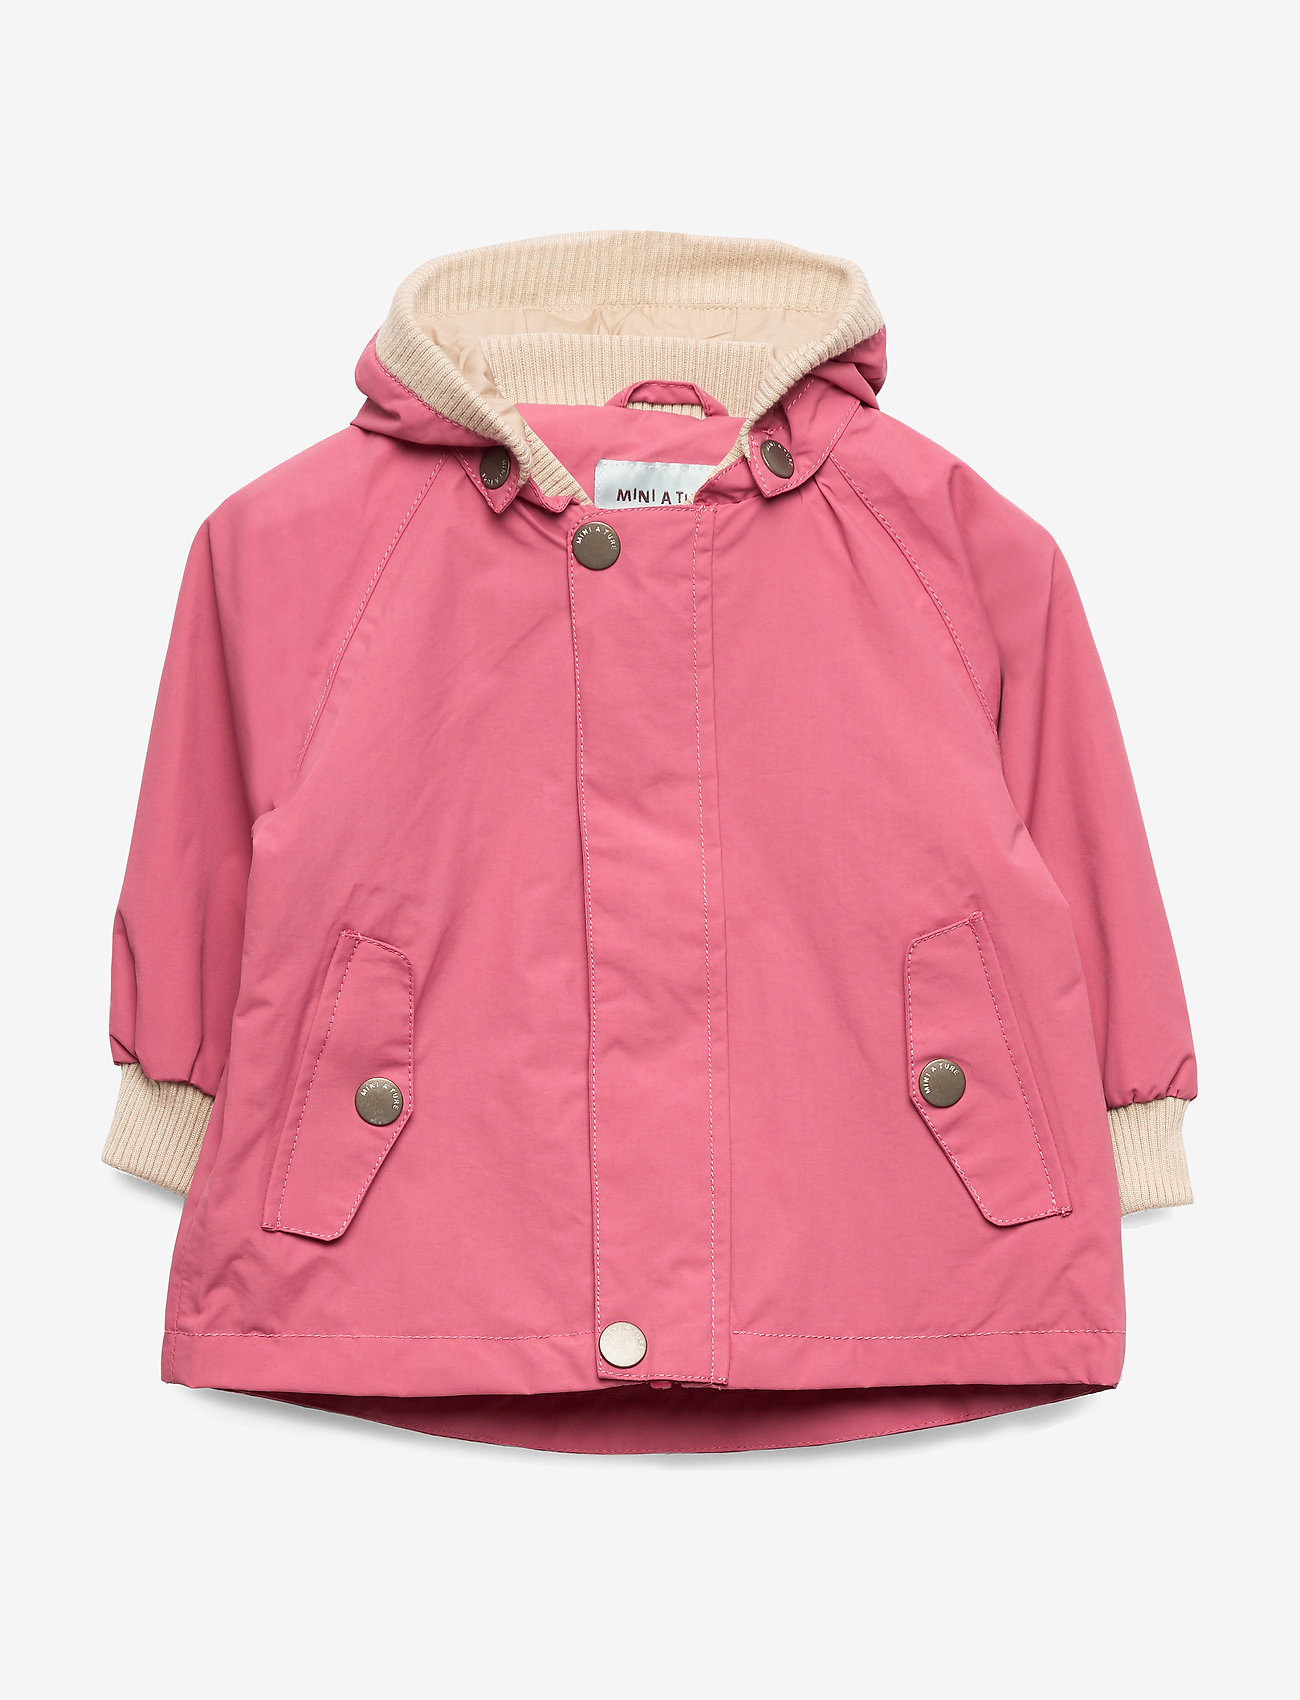 Mini A Ture - Wally Jacket, M - jackets - baroque rose - 0